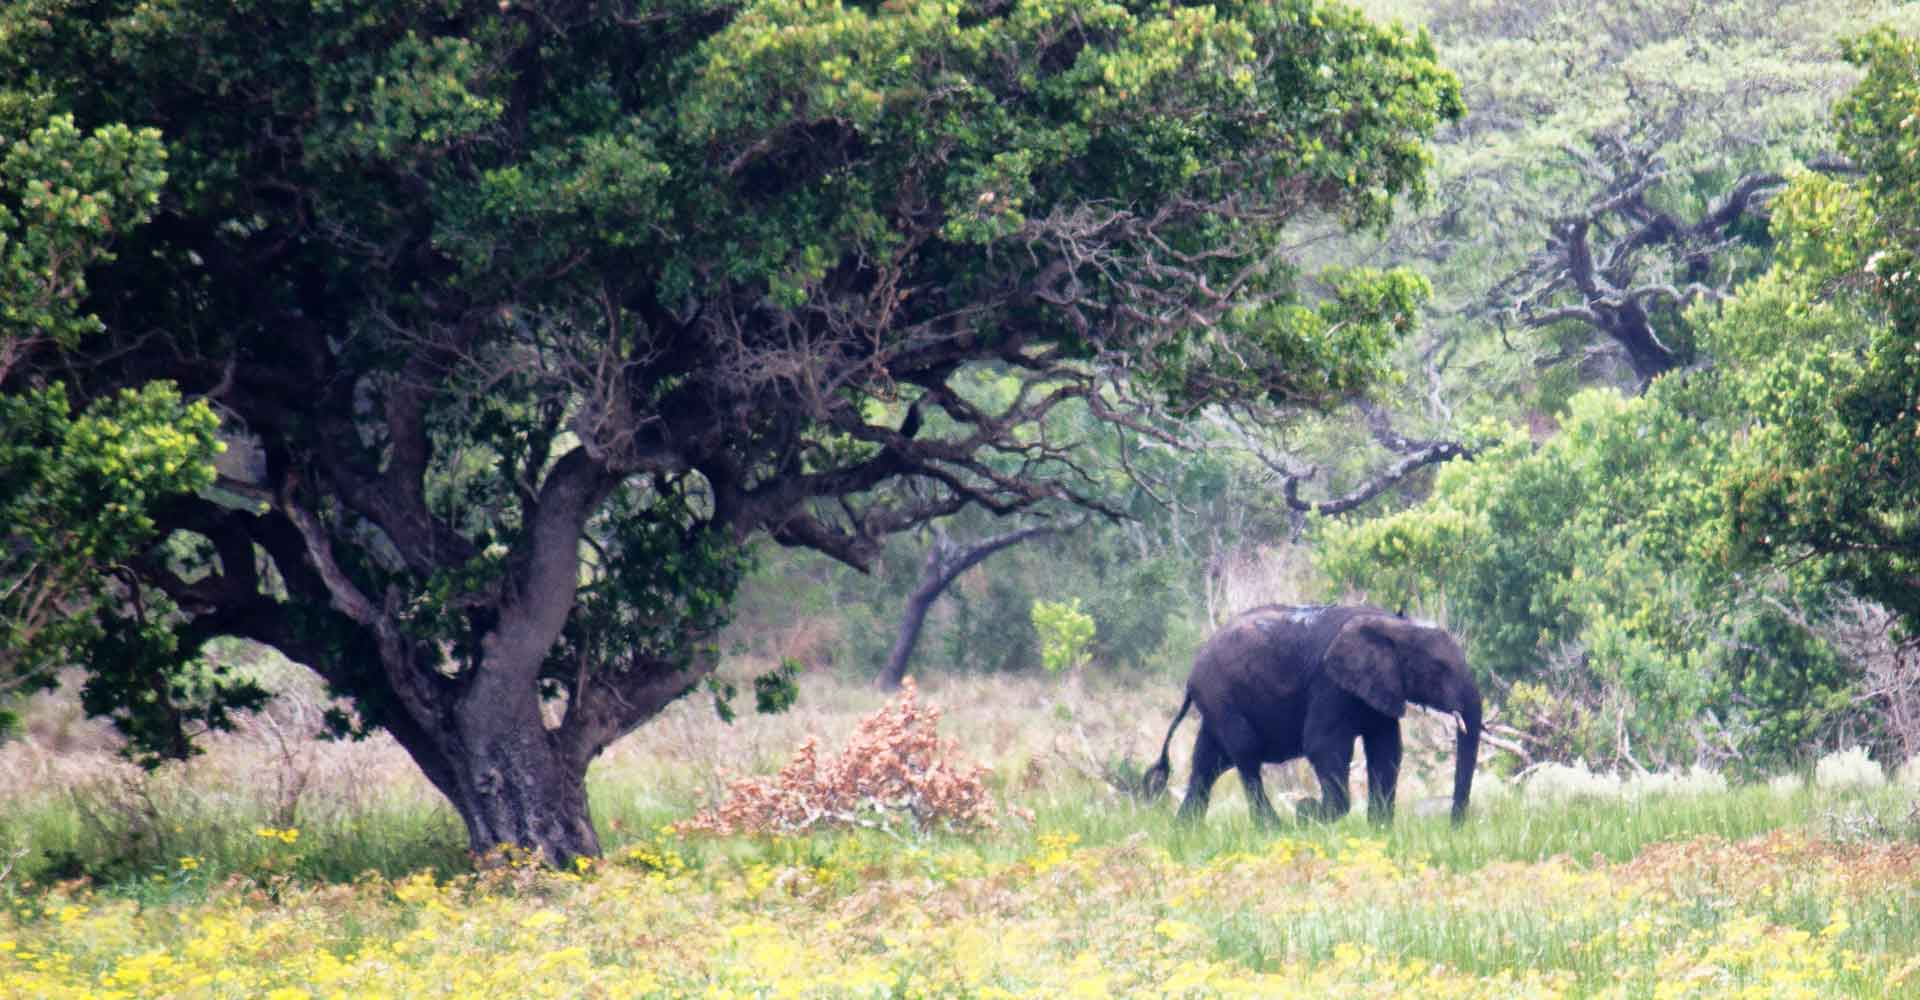 Elephant picture taken during an expedition in Mozambique with Mabeco tours